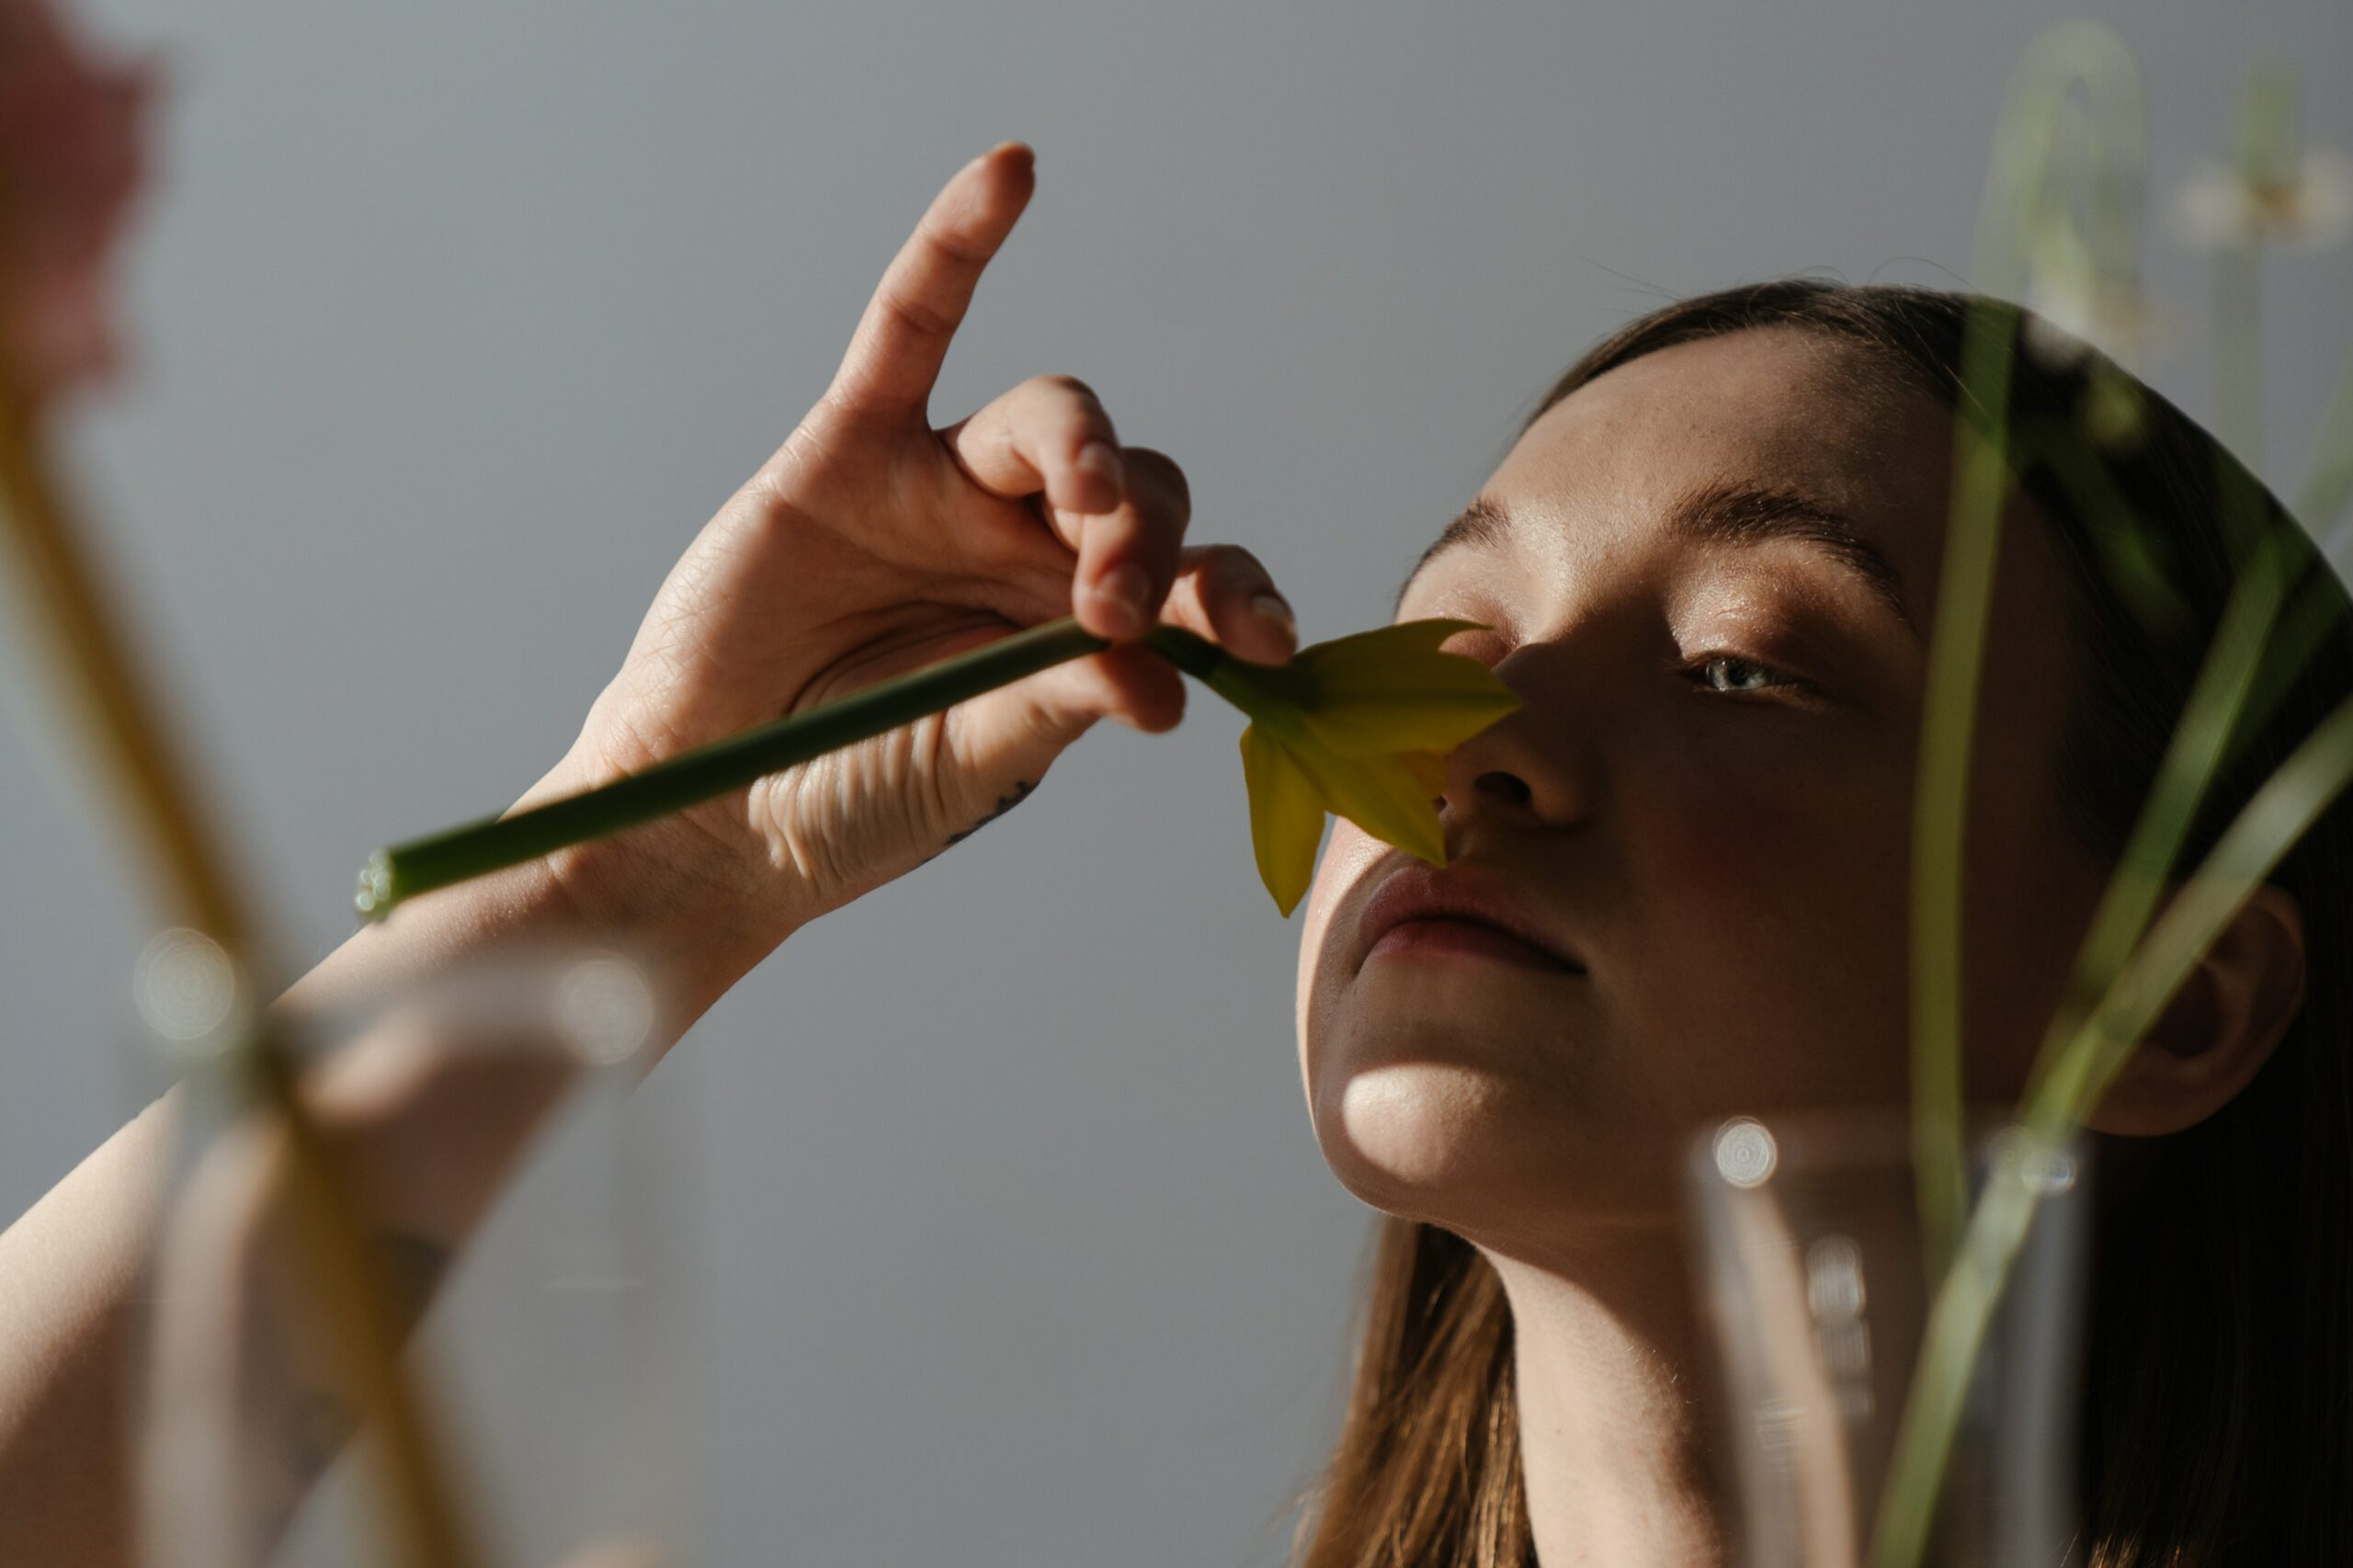 woman-holding-while-smelling-yellow-and-green-flower-4273079 (1)